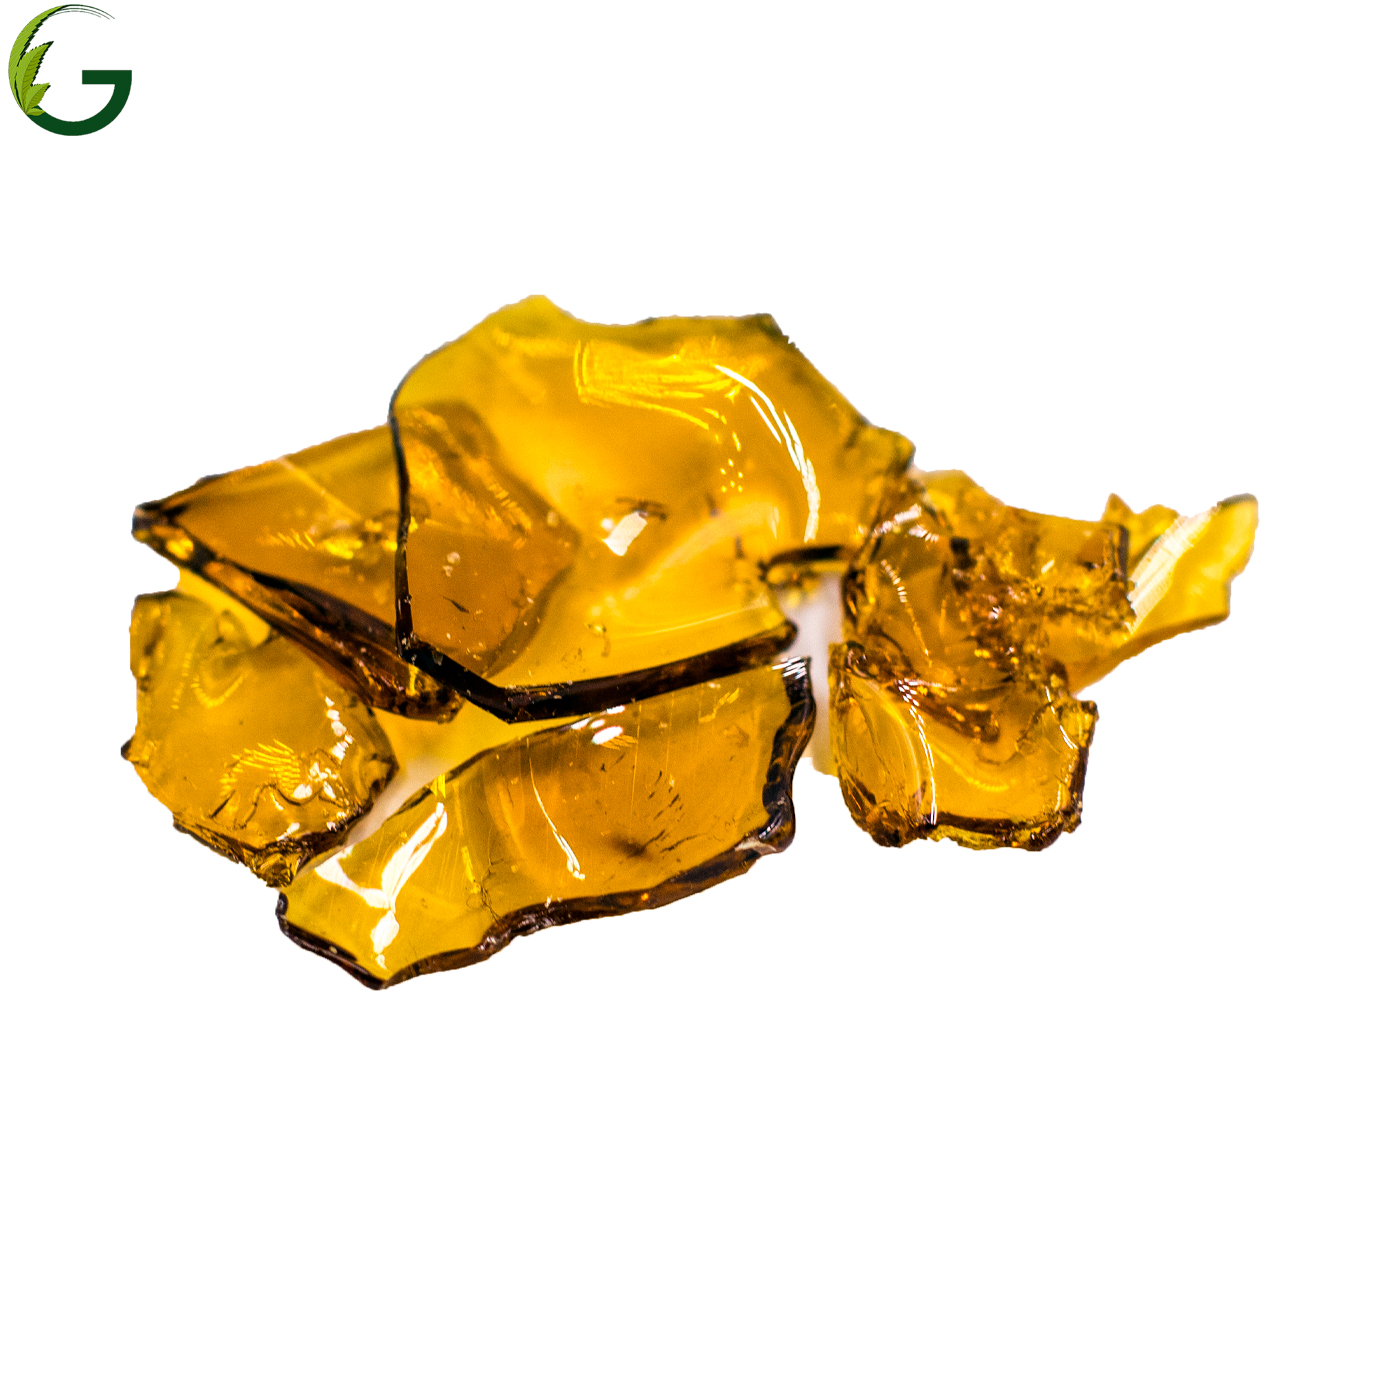 Grease Monkey Shatter (H) – The Good Dispensary